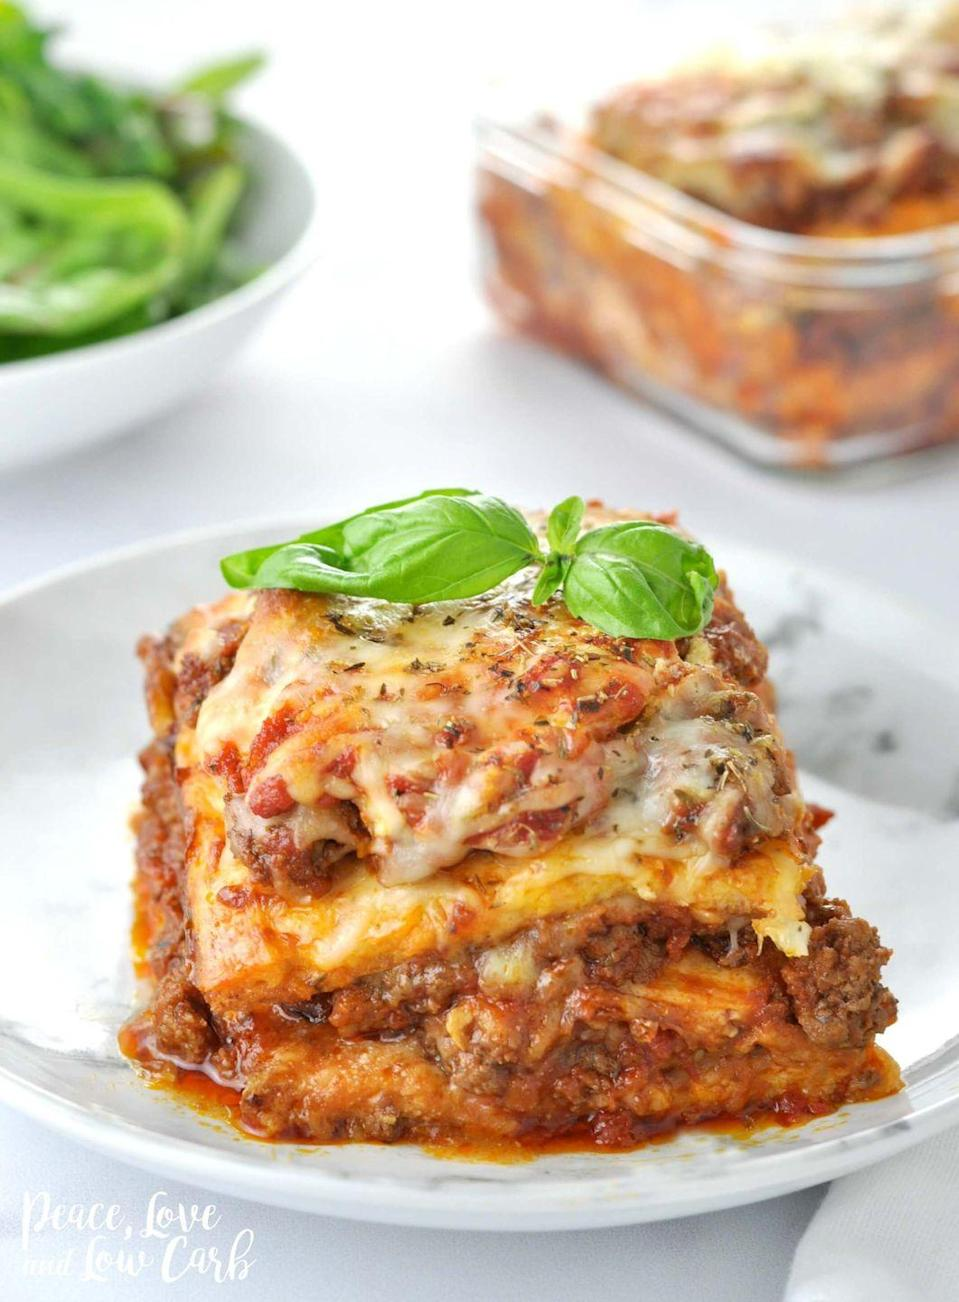 """<p>It tastes just like the real deal.</p><p>Get the recipe from <a href=""""https://peaceloveandlowcarb.com/just-like-the-real-thing-lasagna/"""" rel=""""nofollow noopener"""" target=""""_blank"""" data-ylk=""""slk:Peace, Love, and Low-Carb"""" class=""""link rapid-noclick-resp"""">Peace, Love, and Low-Carb</a>.<br></p>"""